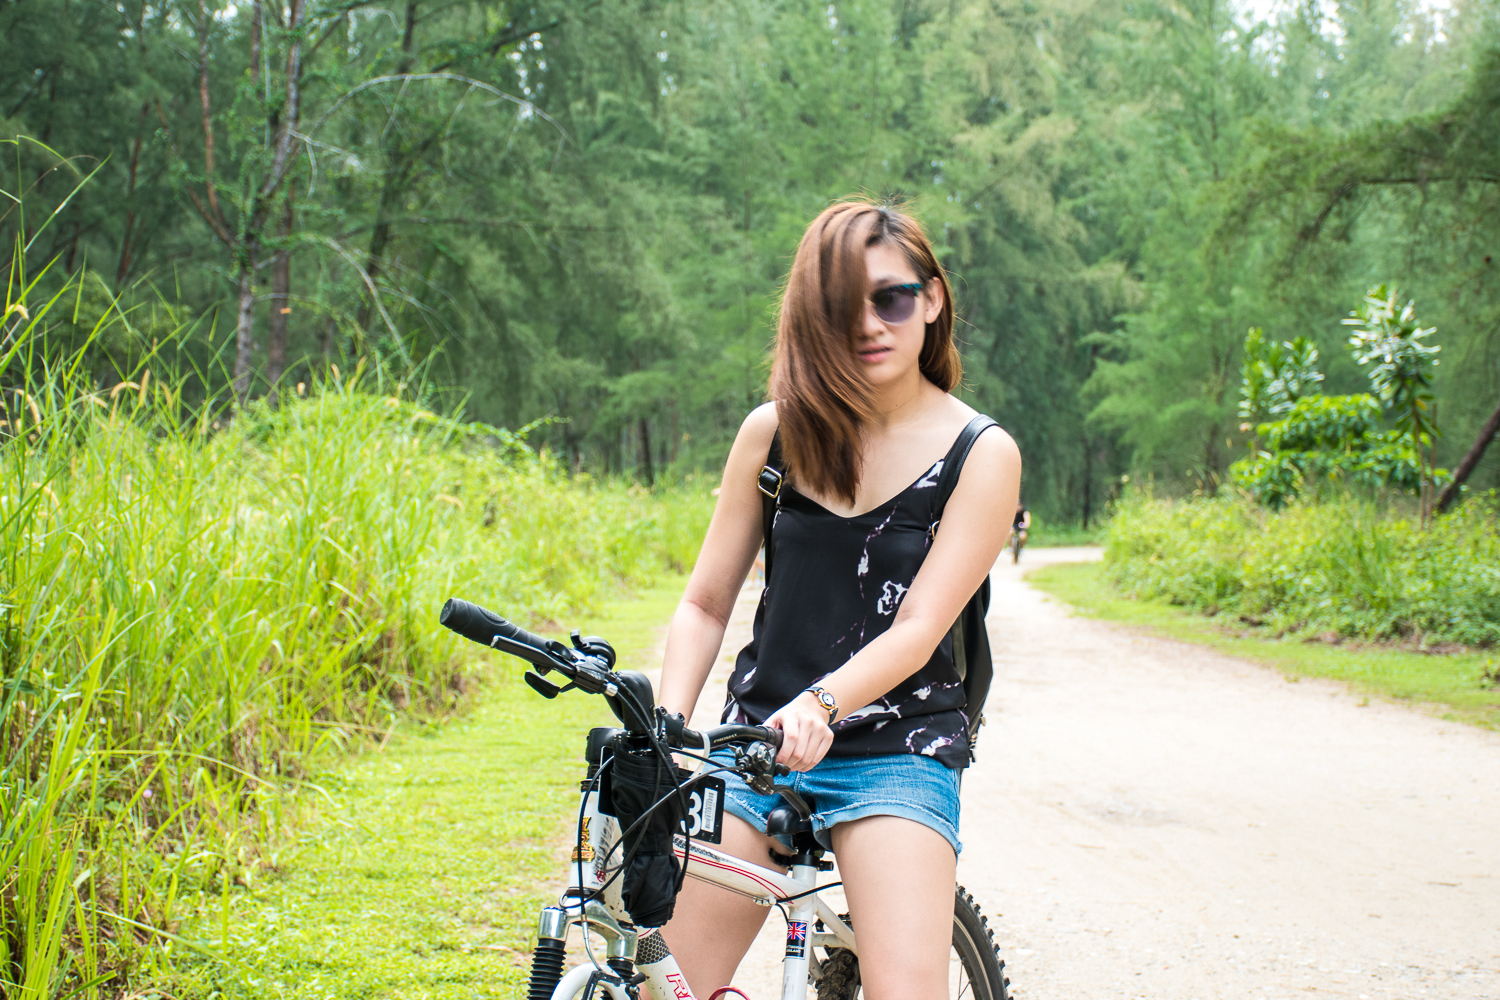 bicycle riding Coney island singapore